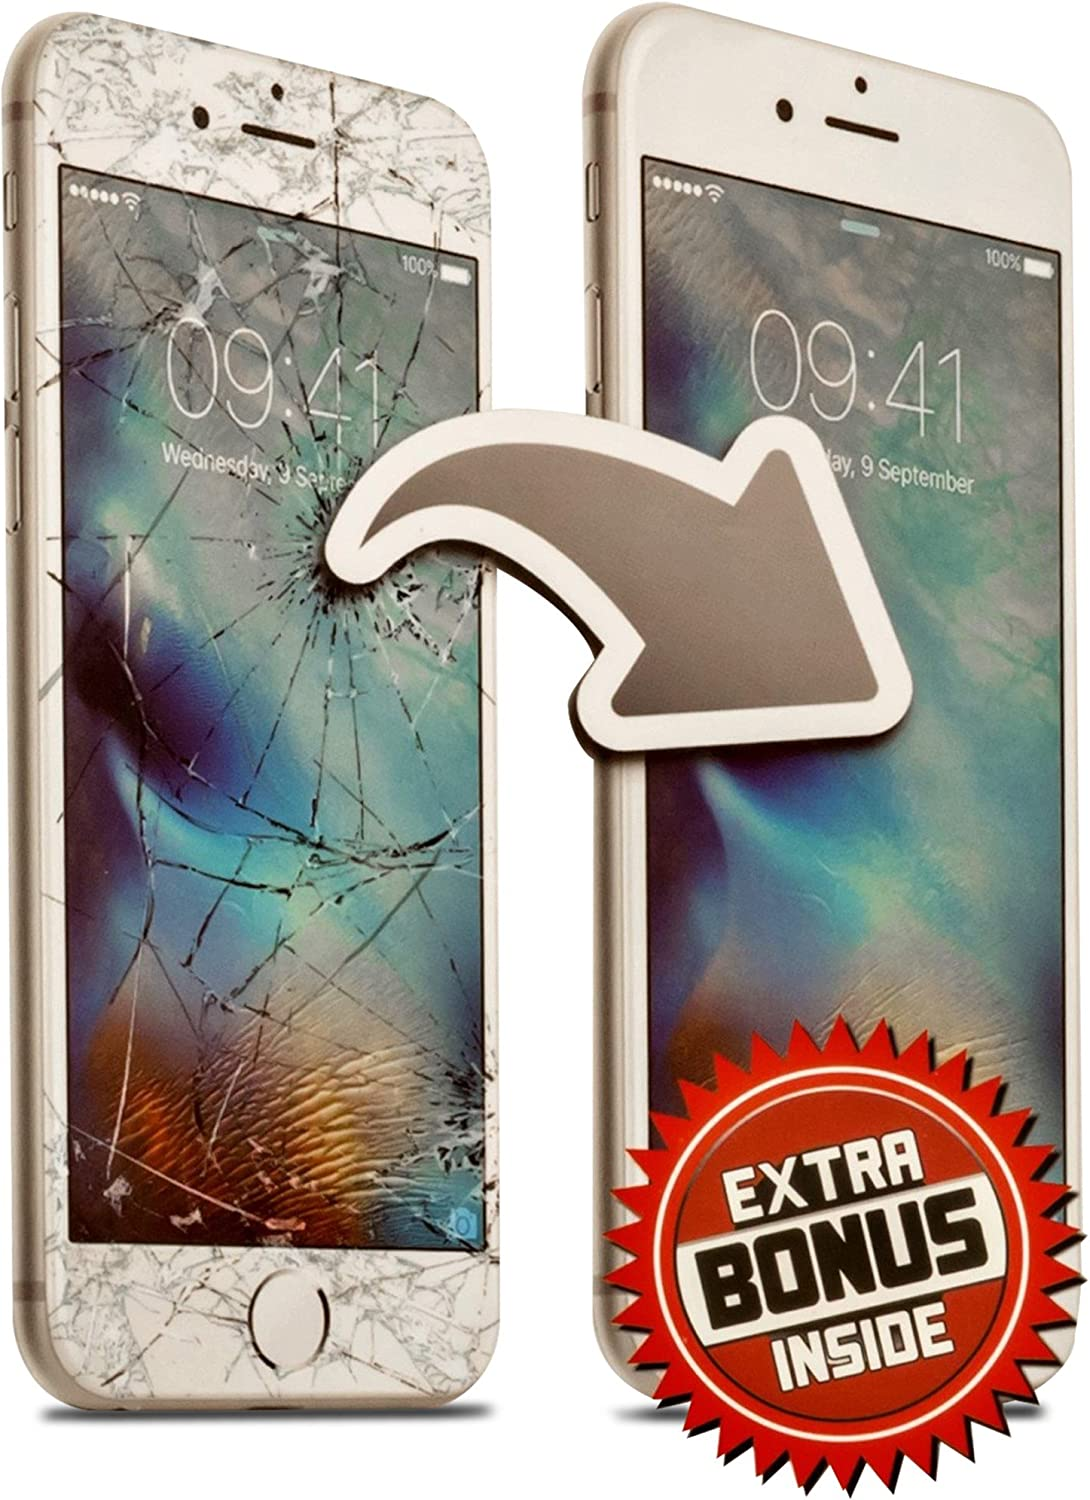 Screen Repair Complete Tool Kit Replacement Parts for iPhone6 Plus (White) Front Glass Lens Step by Step Instructions Two Extra Bonuses USB Charging Cable and Lightweight Matching Protector Case